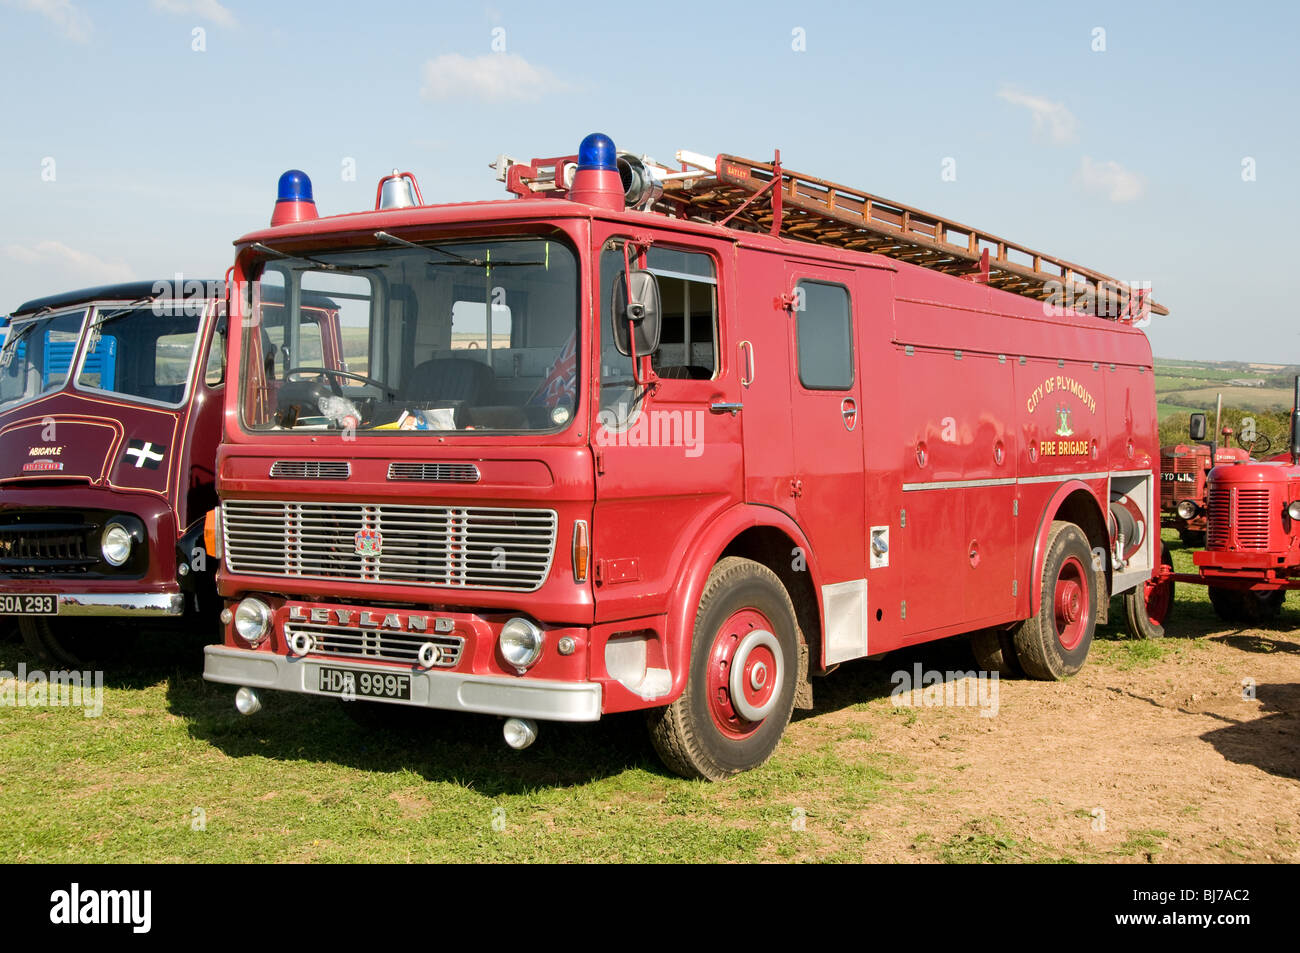 A preserved Leyland fire engine that used to be operated by the City of Plymouth Fire Service. - Stock Image